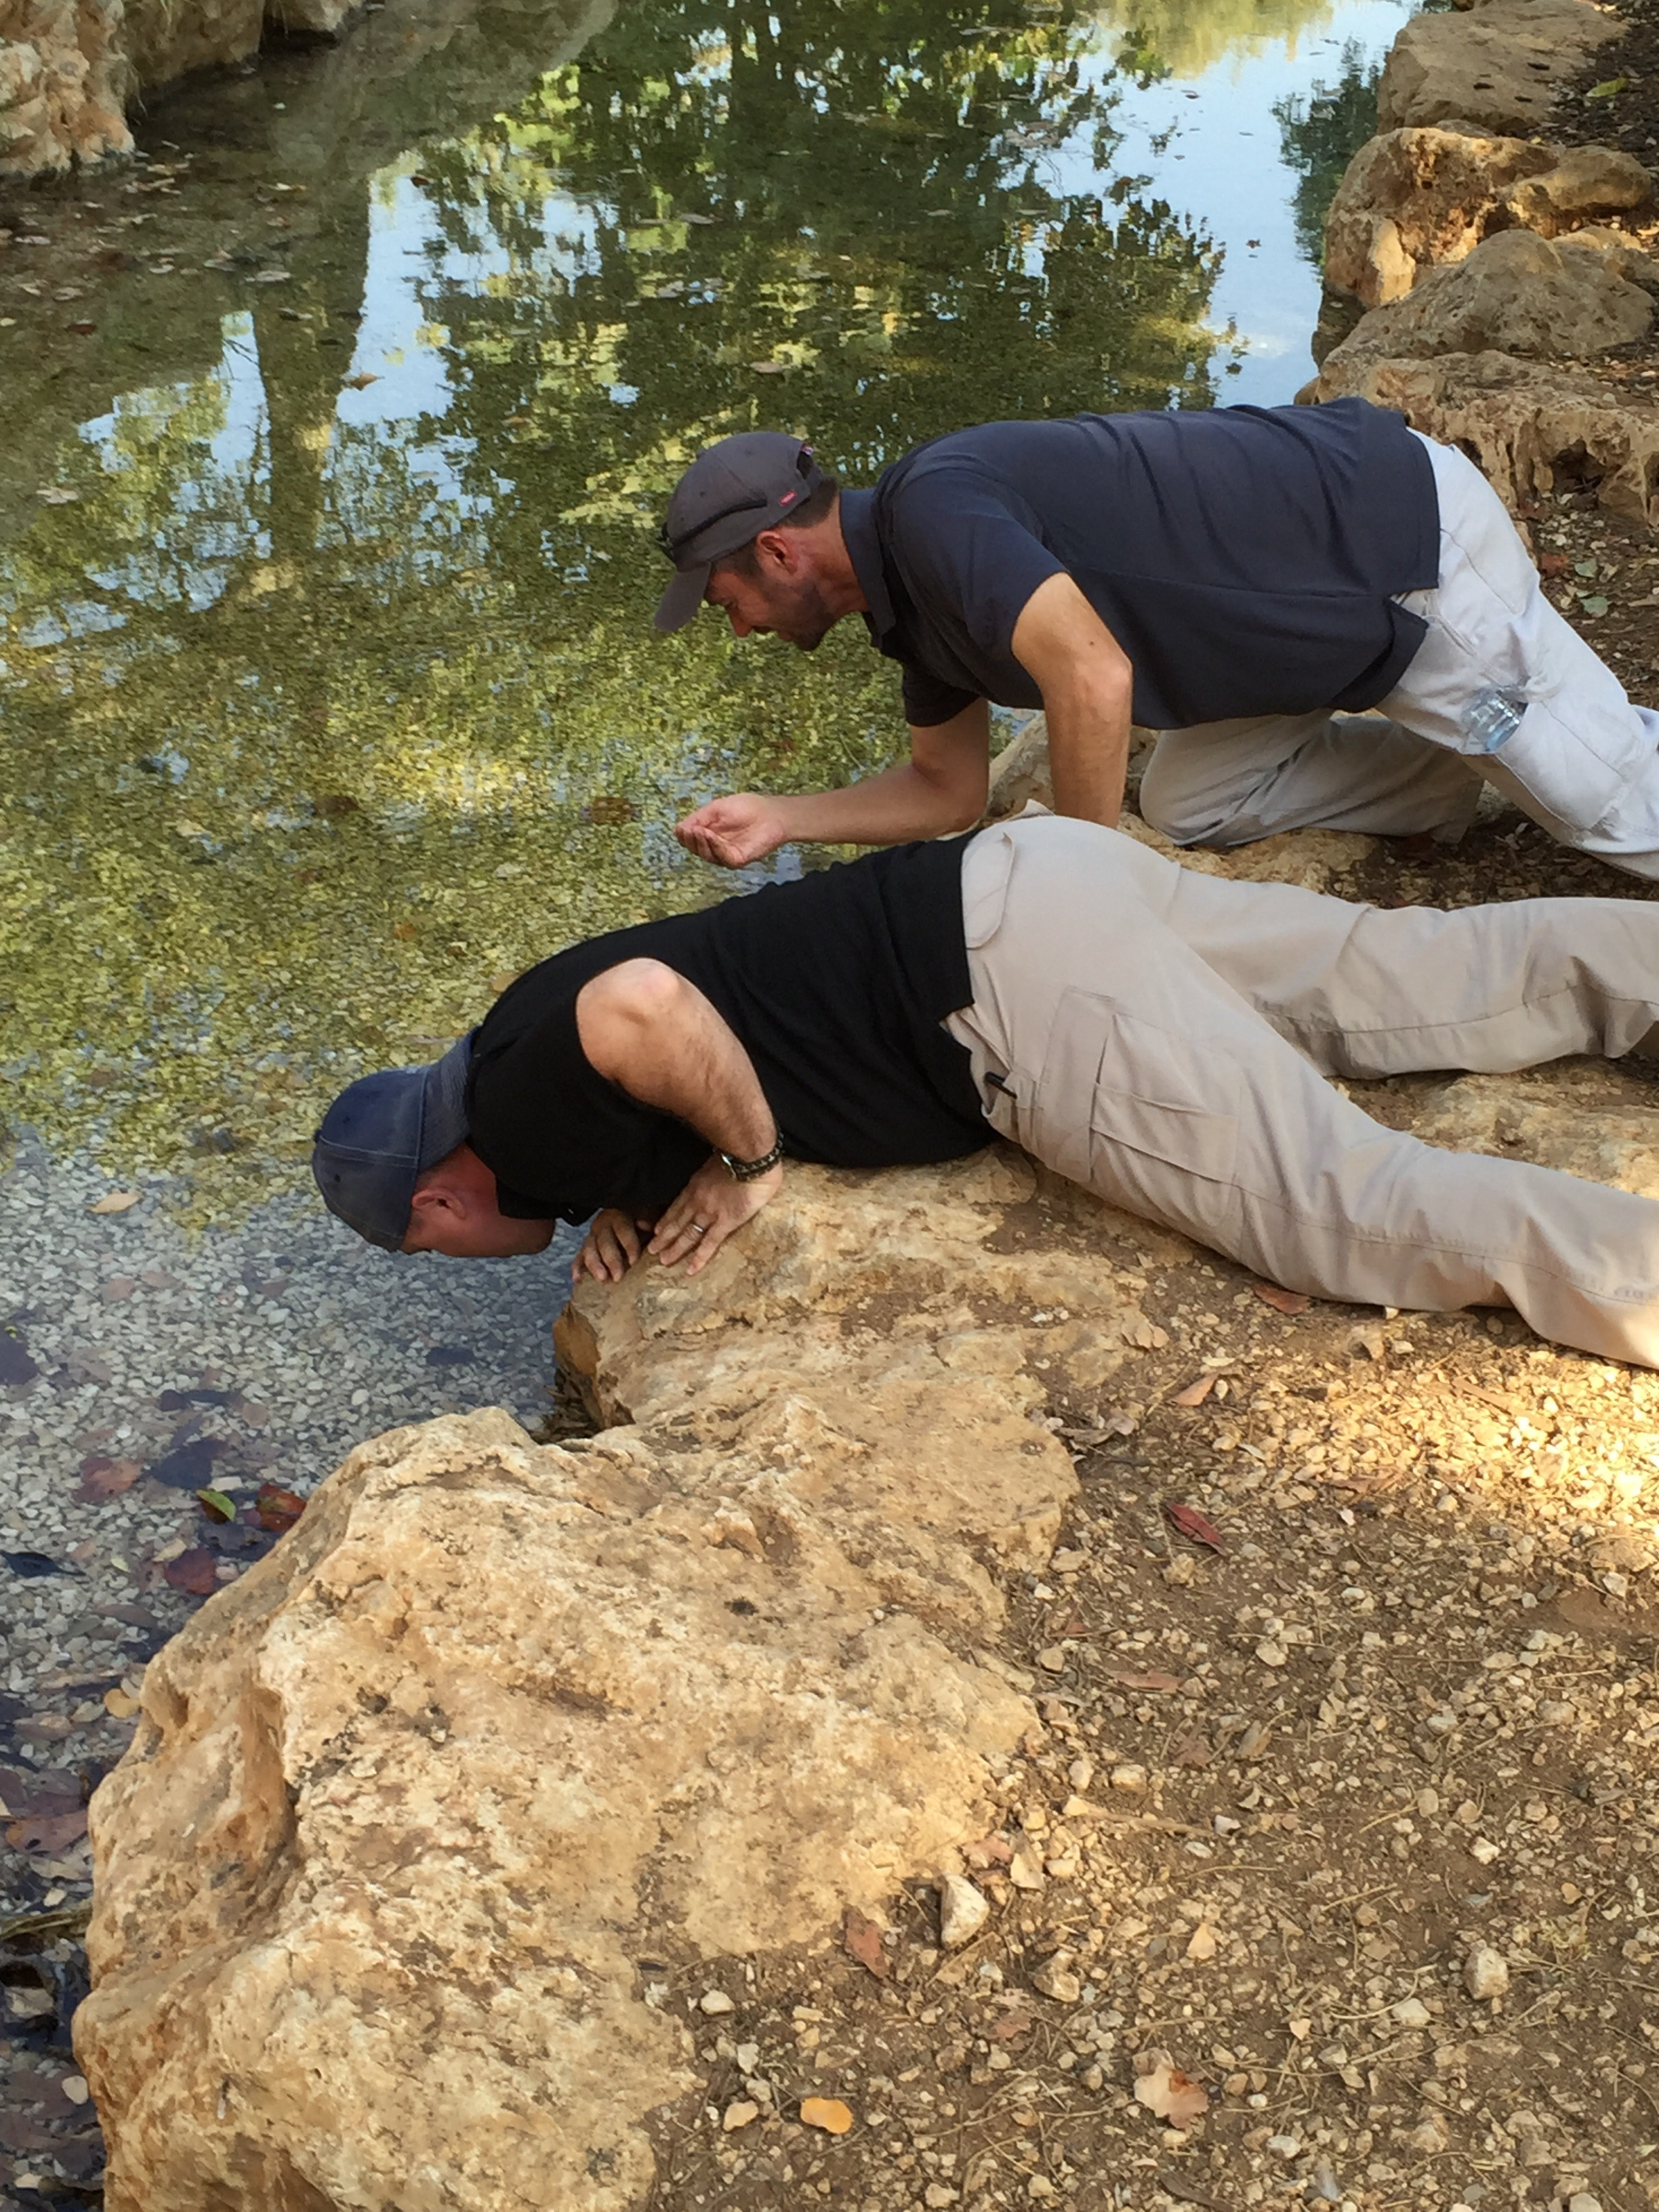 Norm and I took a drink from the stream Harod, like Gideon's men did.